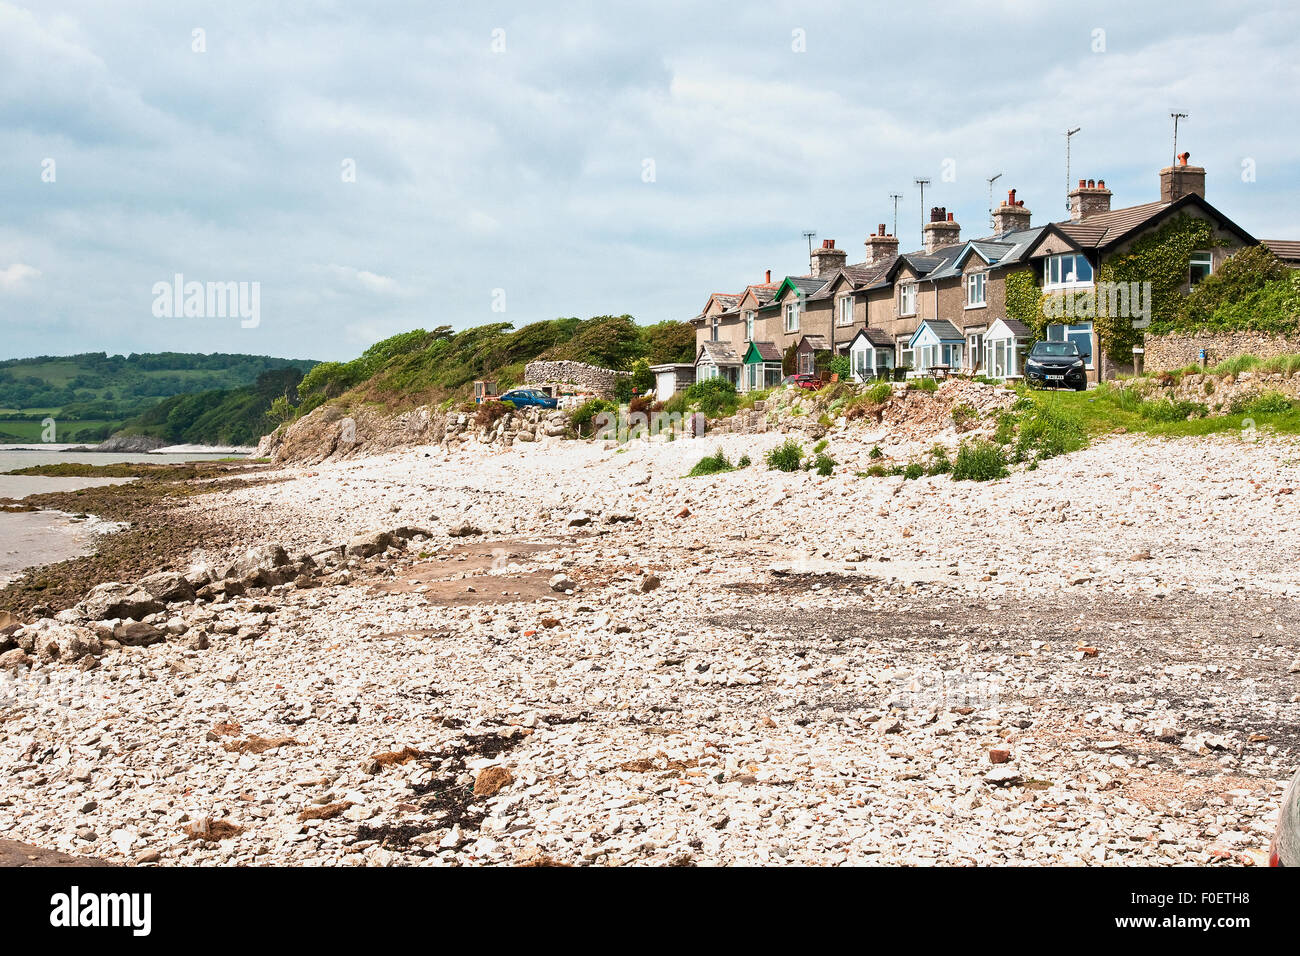 Idyllic setting for a terrace of houses fronting the beach at Silverdale, on Morecambe Bay, Lancashire - Stock Image